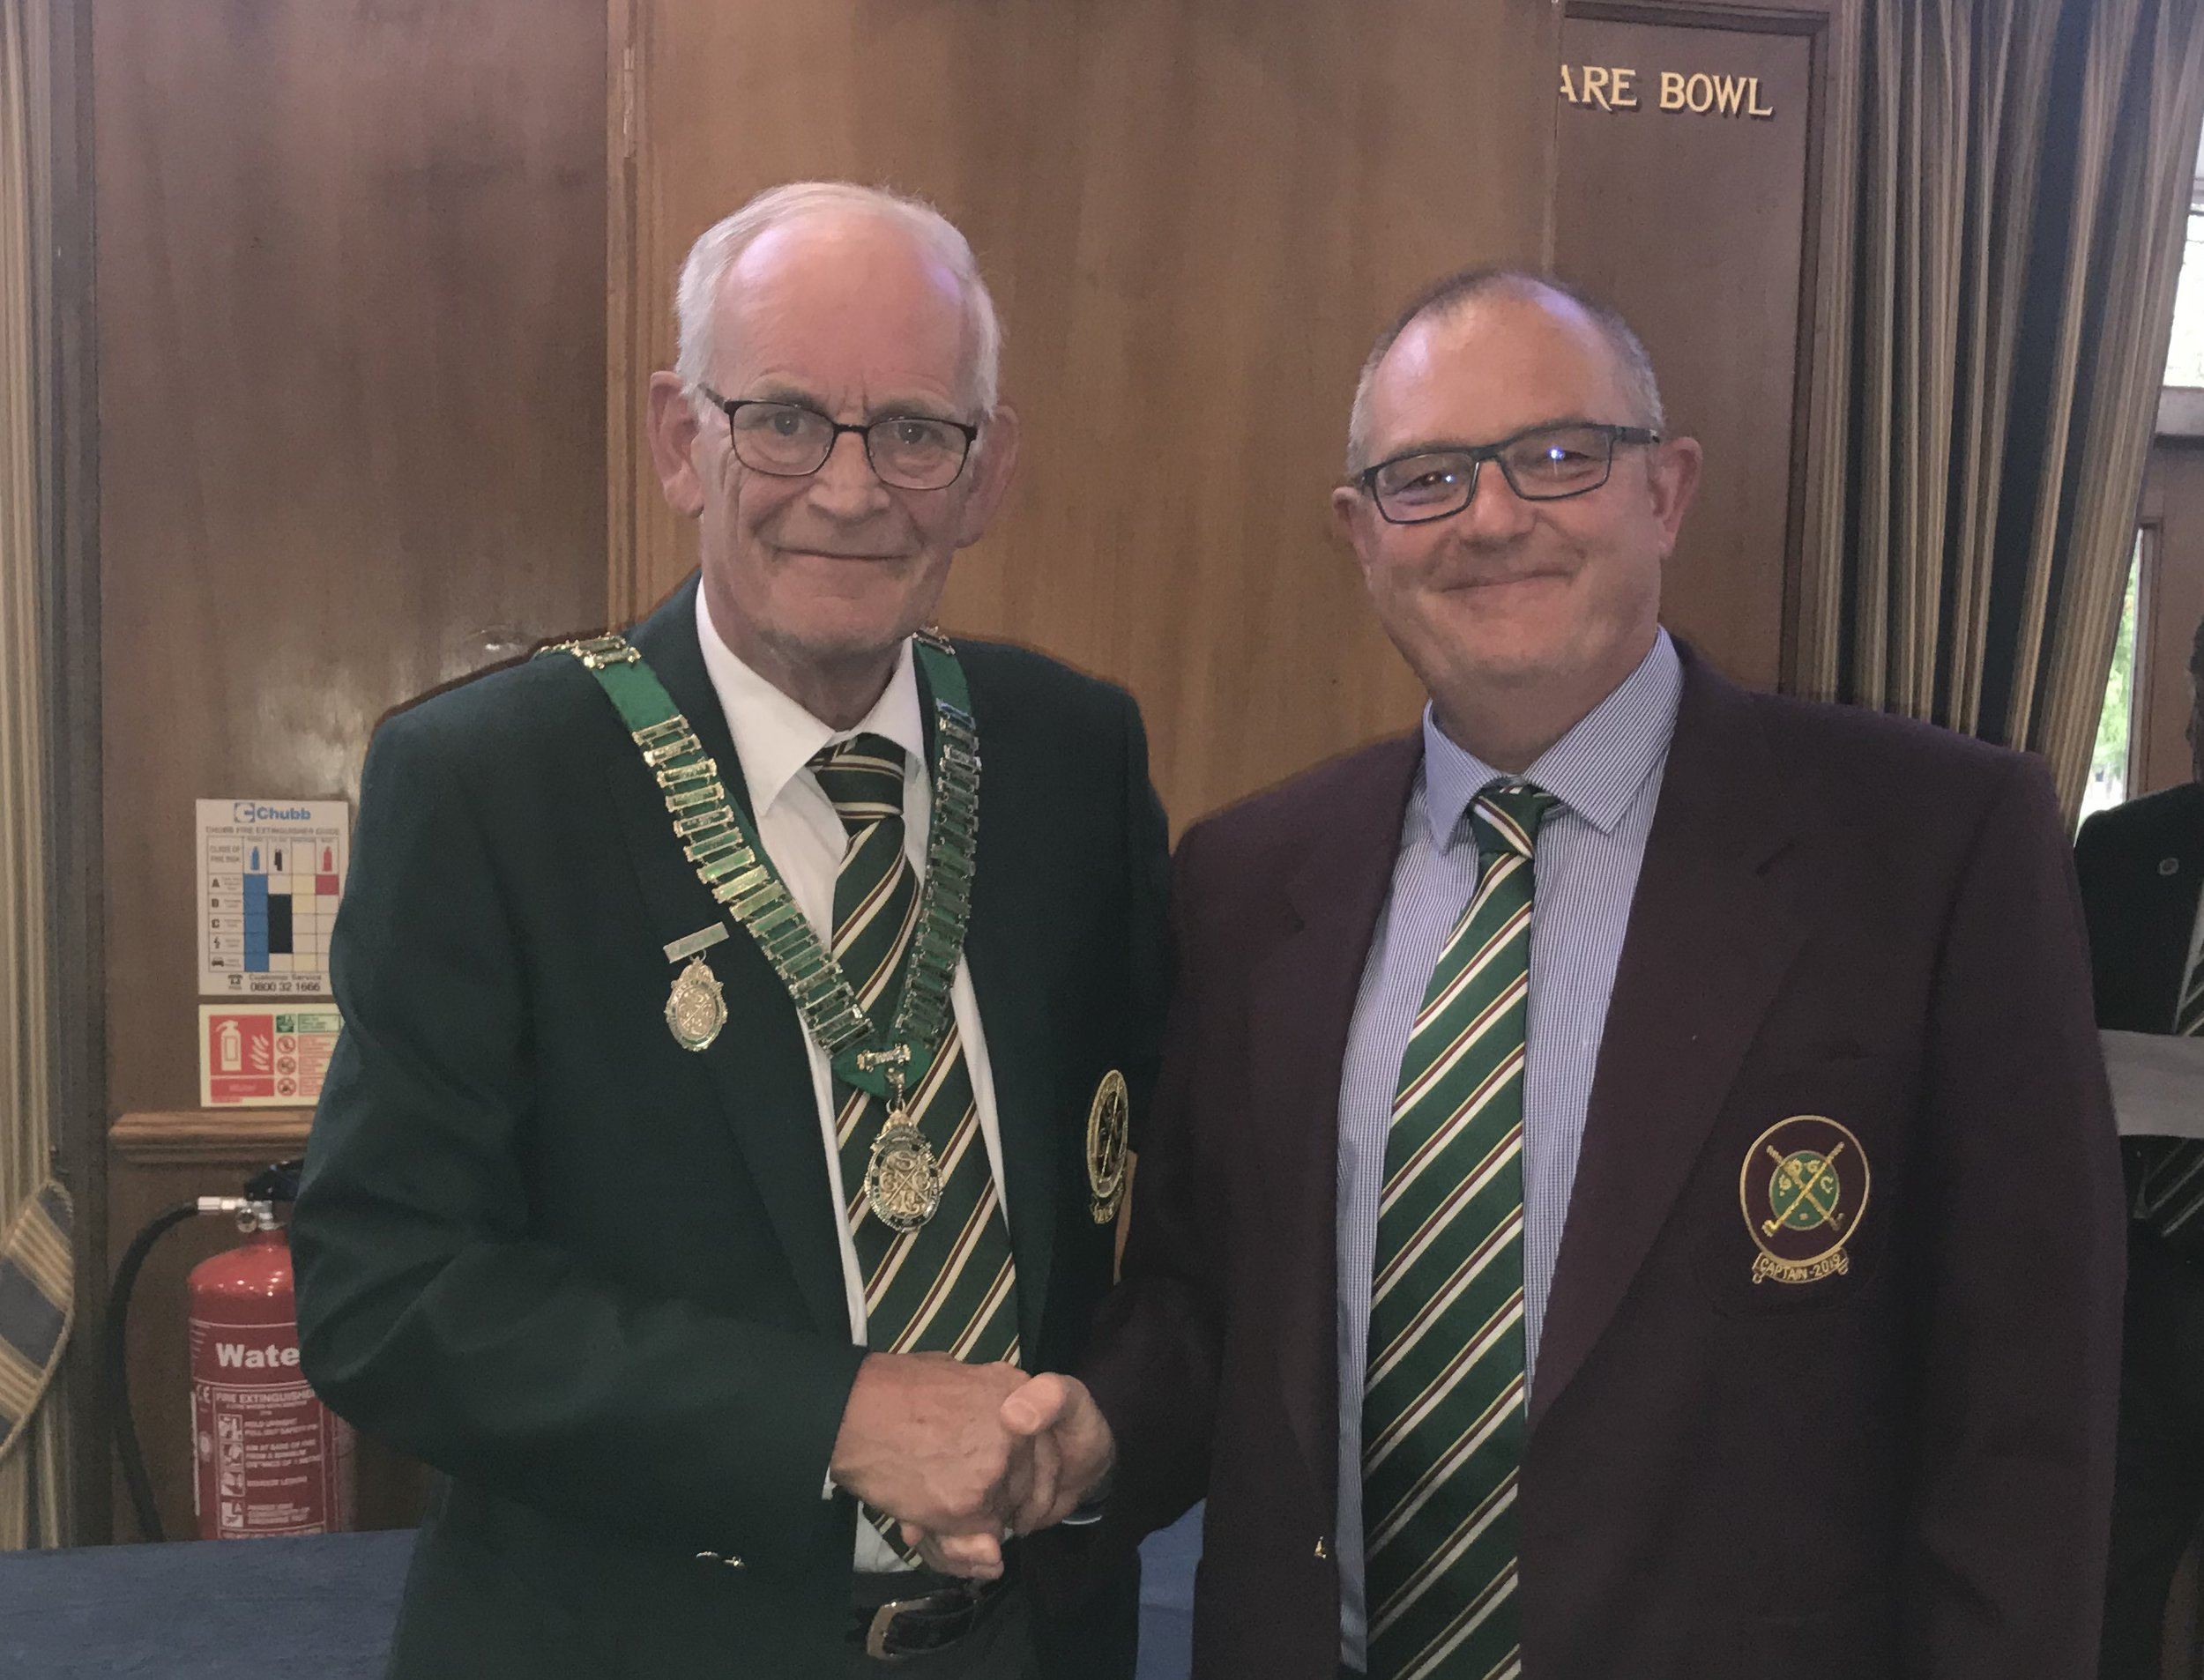 Steve McSweeney from Grim's Dyke Golf Club receiving the Reigning Captains prize from Society Captain Peter Cansick